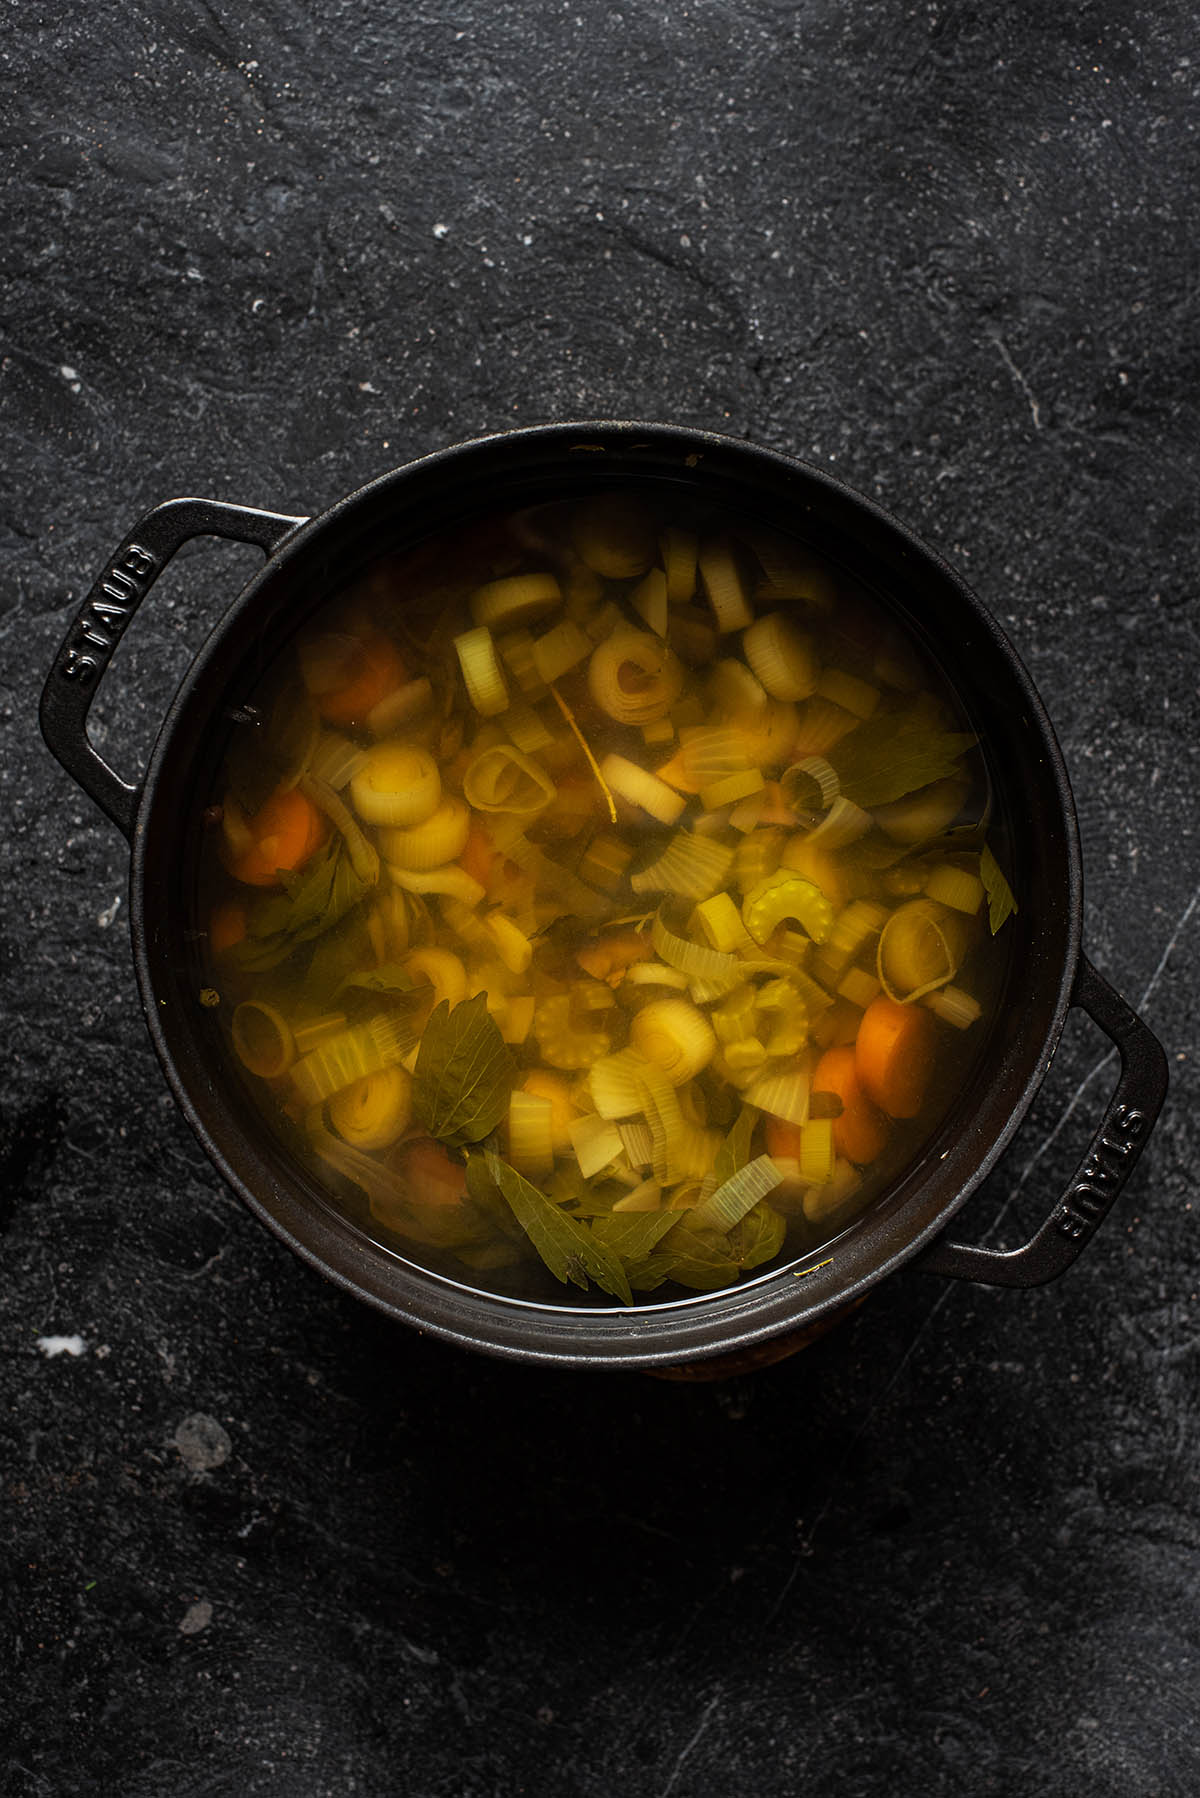 Vegetable broth in a large pot after cooking the vegetables.